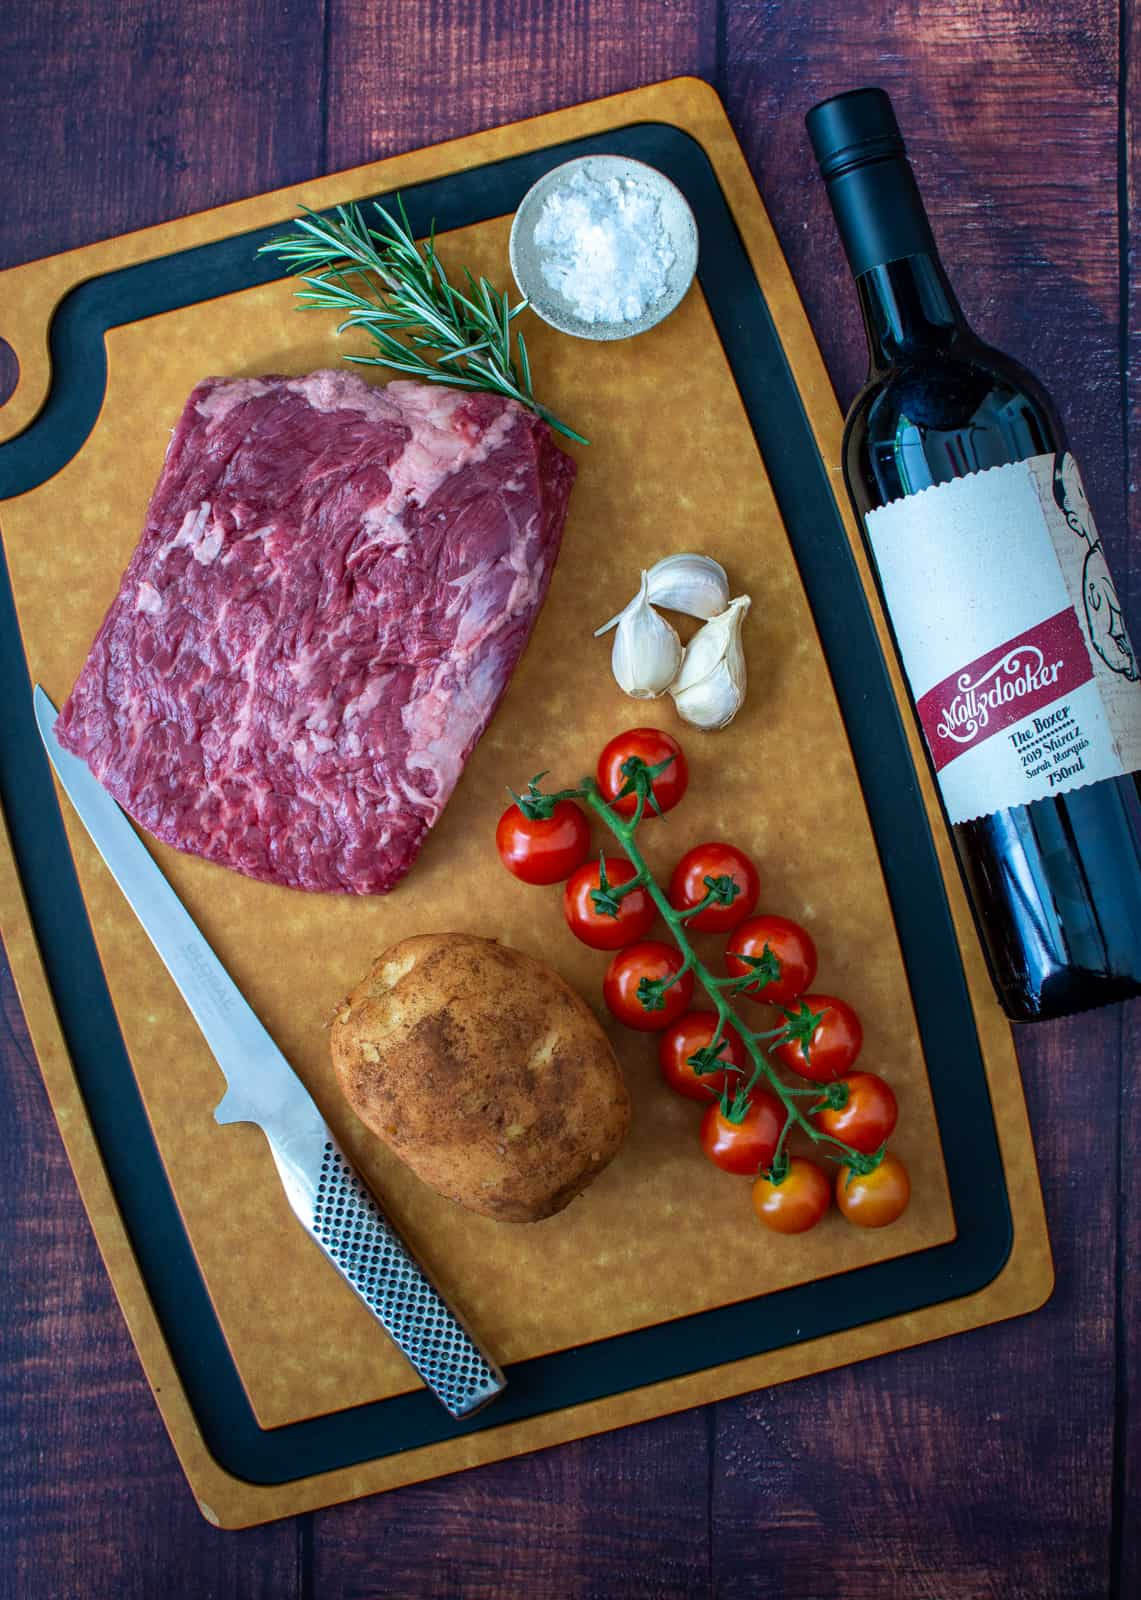 bavette steak, tomatoes & potato on chopping board. Red wine next to it